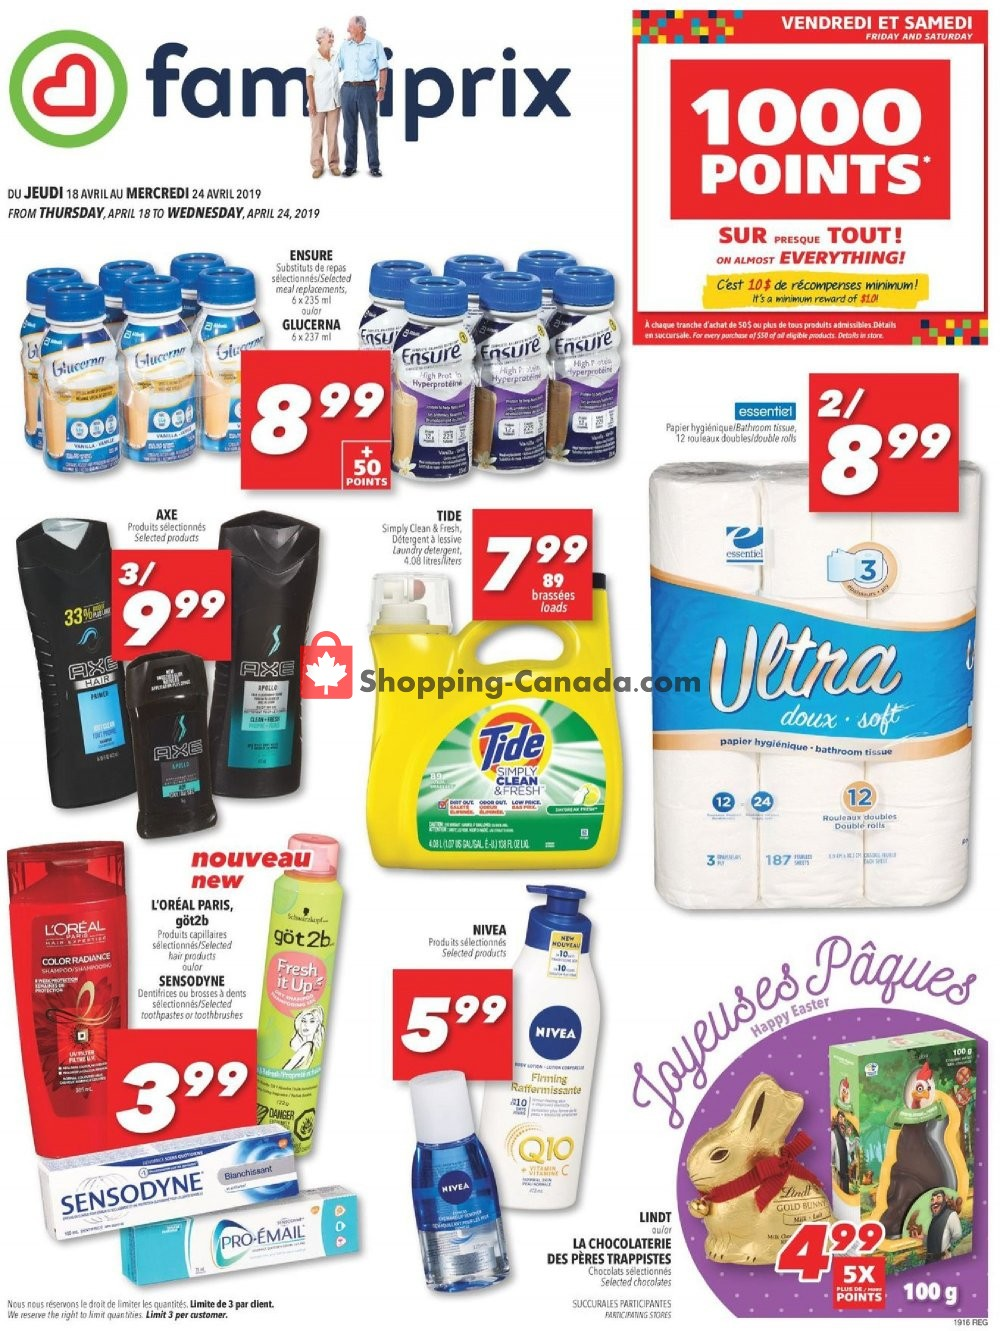 Flyer Familiprix Canada - from Thursday April 18, 2019 to Wednesday April 24, 2019